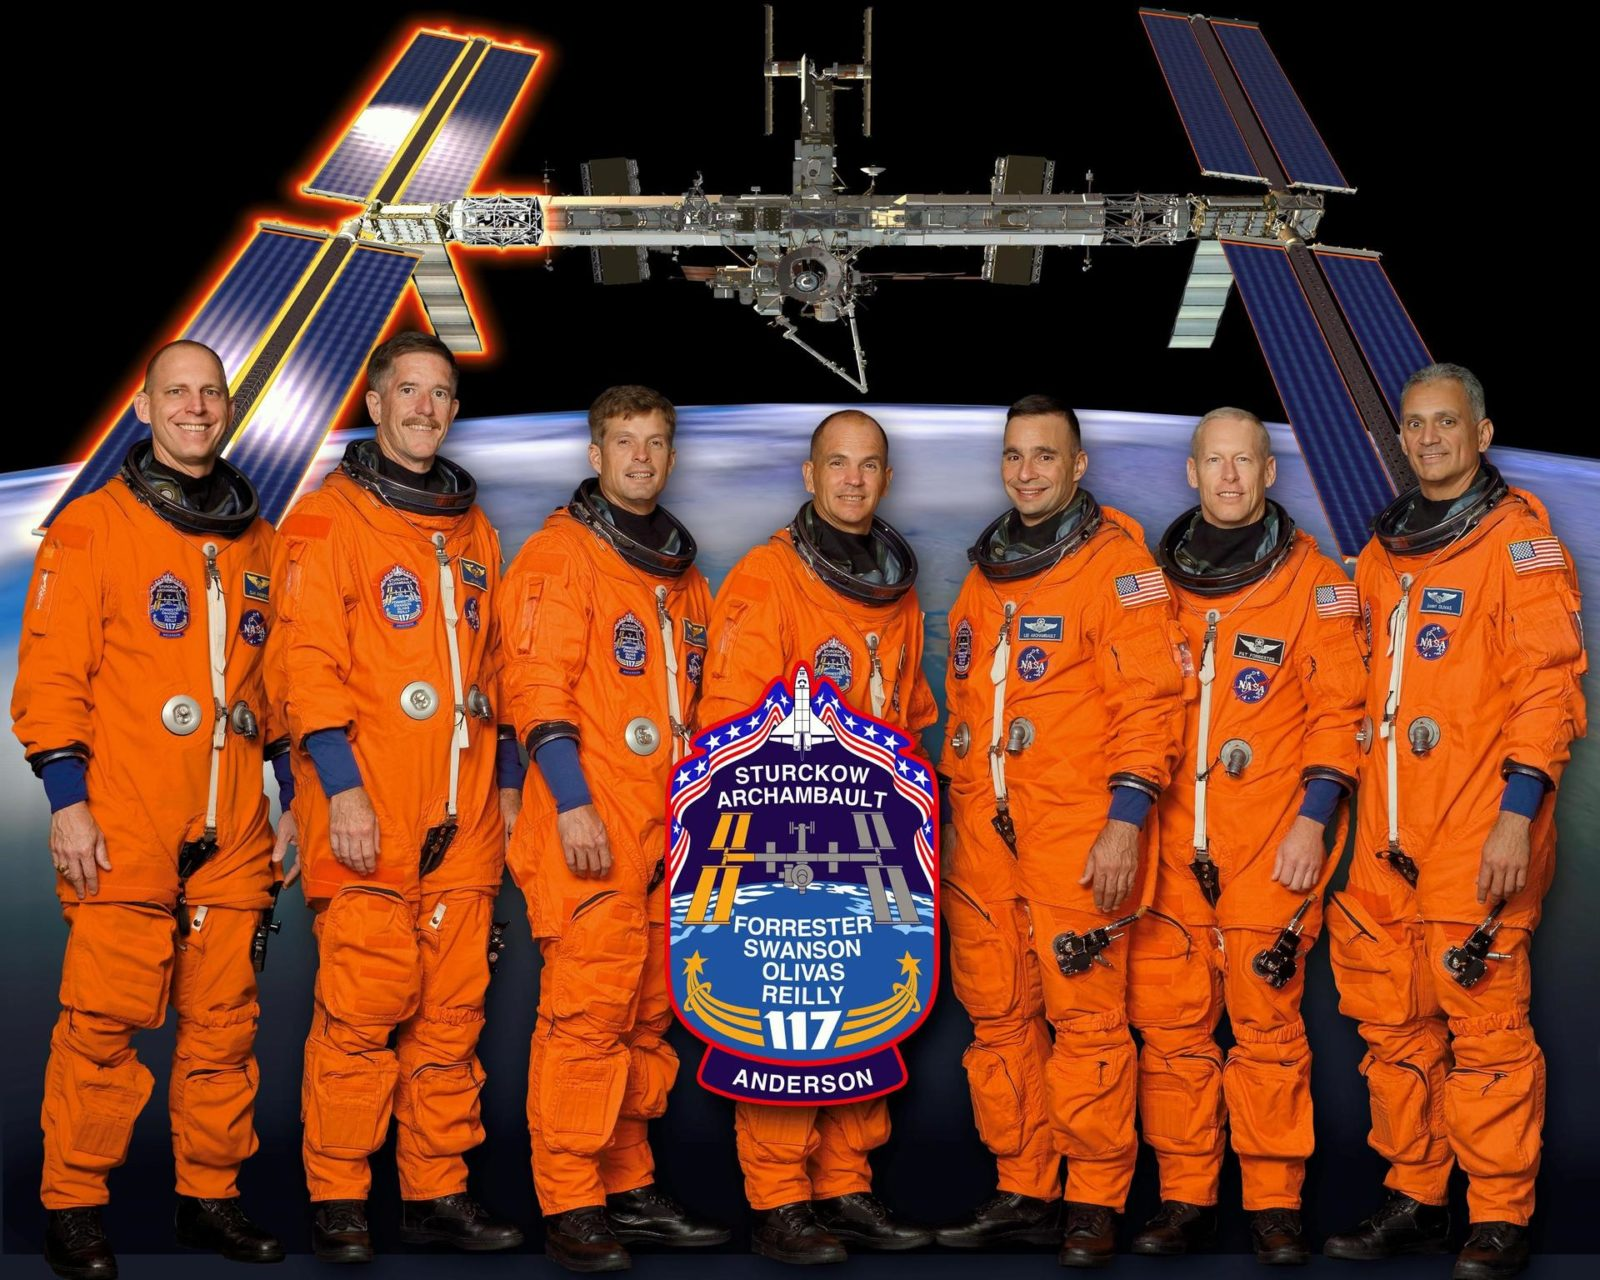 KENNEDY SPACE CENTER, FLA. -- STS117-S-002 (May 2007) --- These seven astronauts take a break from training to pose for the STS-117 crew portrait. Scheduled to launch aboard the Space Shuttle Atlantis are (from the left) astronauts Clayton C. Anderson, James F. Reilly II, Steven R. Swanson, mission specialists; Frederick W. (Rick) Sturckow, commander; Lee J. Archambault, pilot; Patrick G. Forrester and John D. (Danny) Olivas, mission specialists. Anderson will join Expedition 15 in progress to serve as a flight engineer aboard the International Space Station. The crewmembers are attired in training versions of their shuttle launch and entry suits. KSC-07pd1262